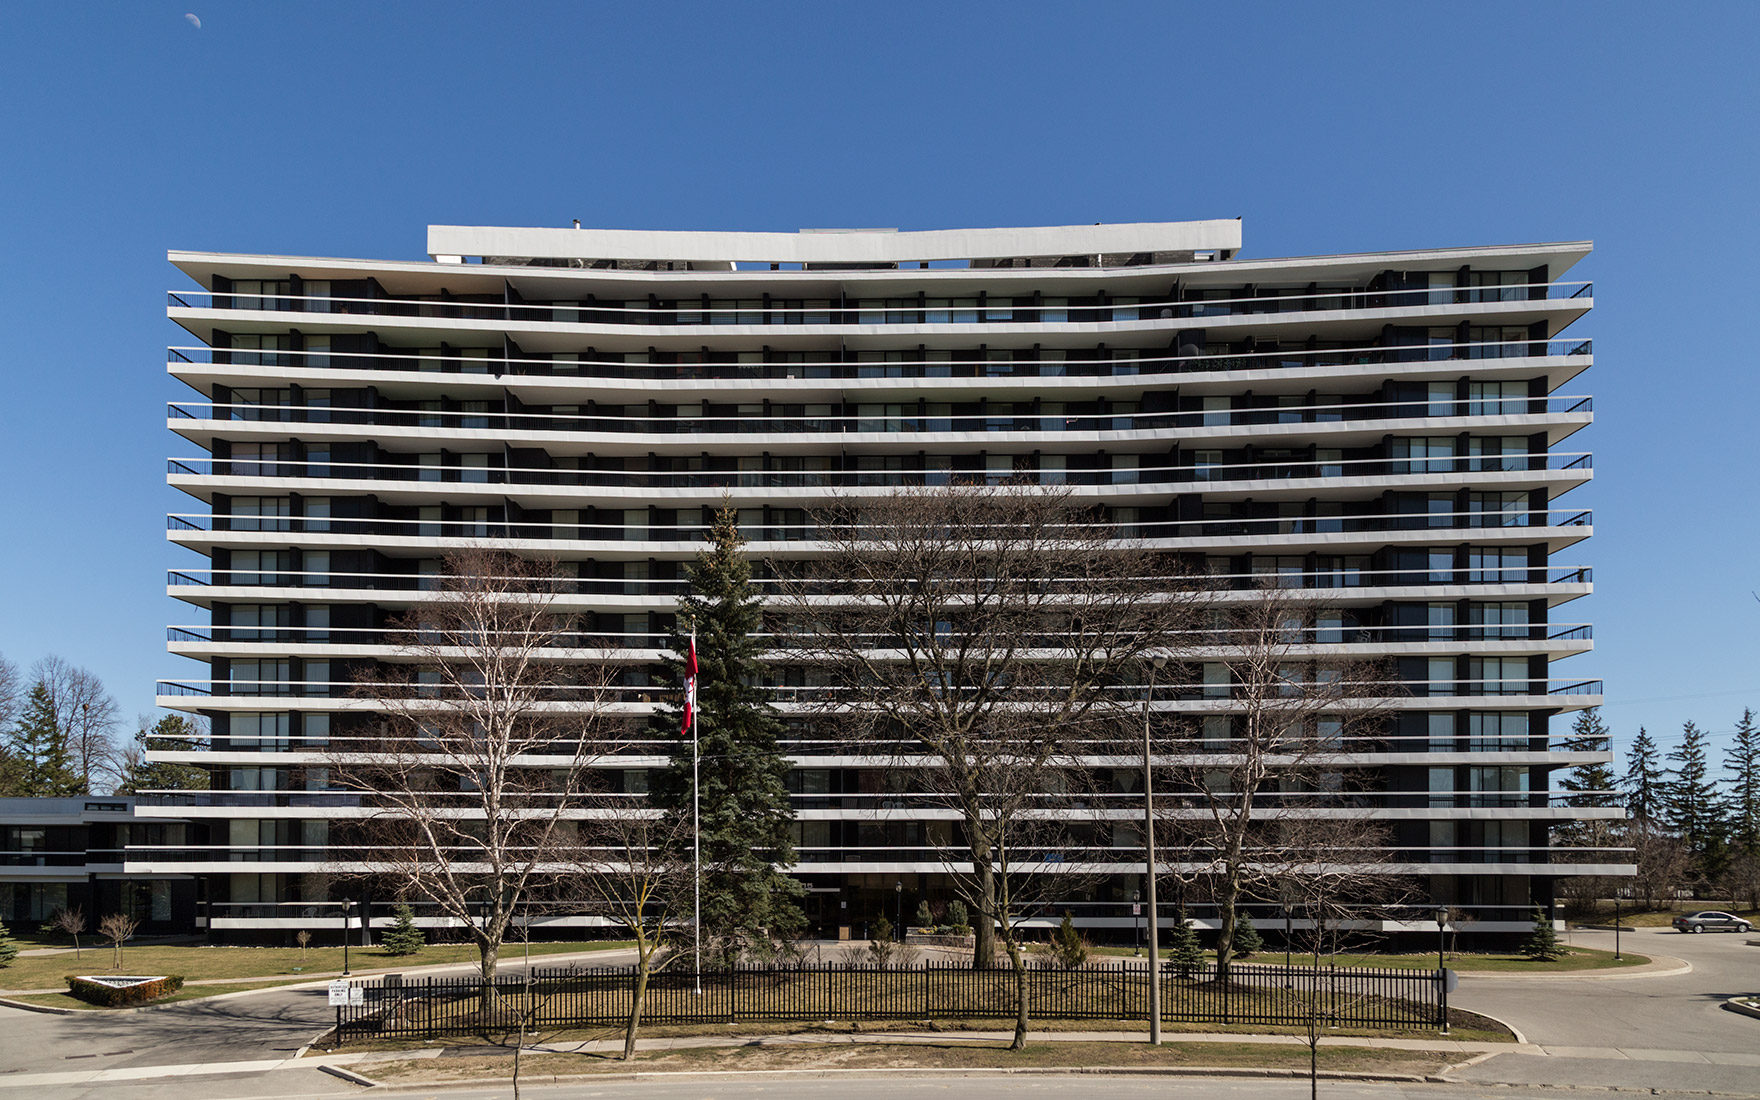 20160425. NetNorth York Modernism. A long view on an unmistakabl